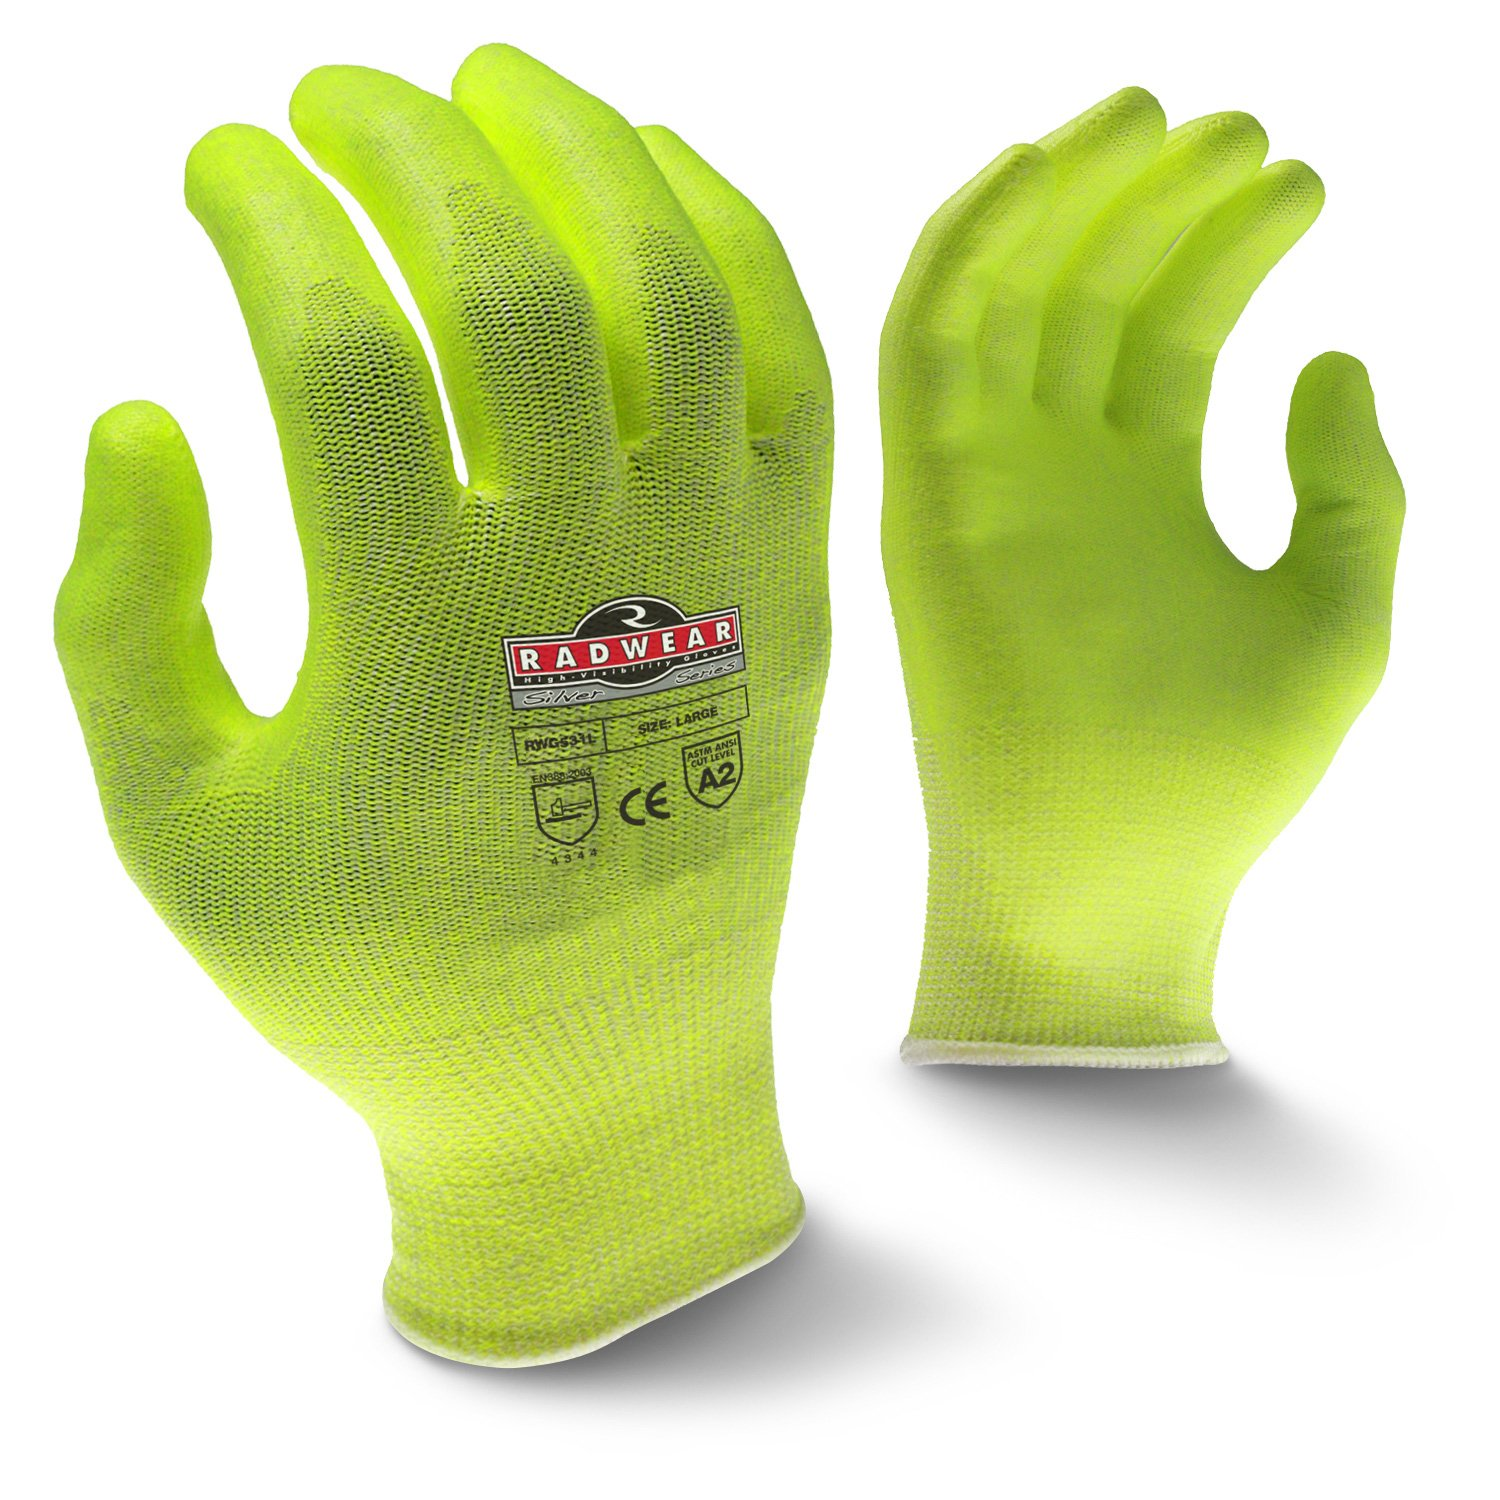 Radians RWG531L Radwear Silver Series Hi-Visibility Cut Level A2 Grip Glove (Dozen) by Radians (Image #1)